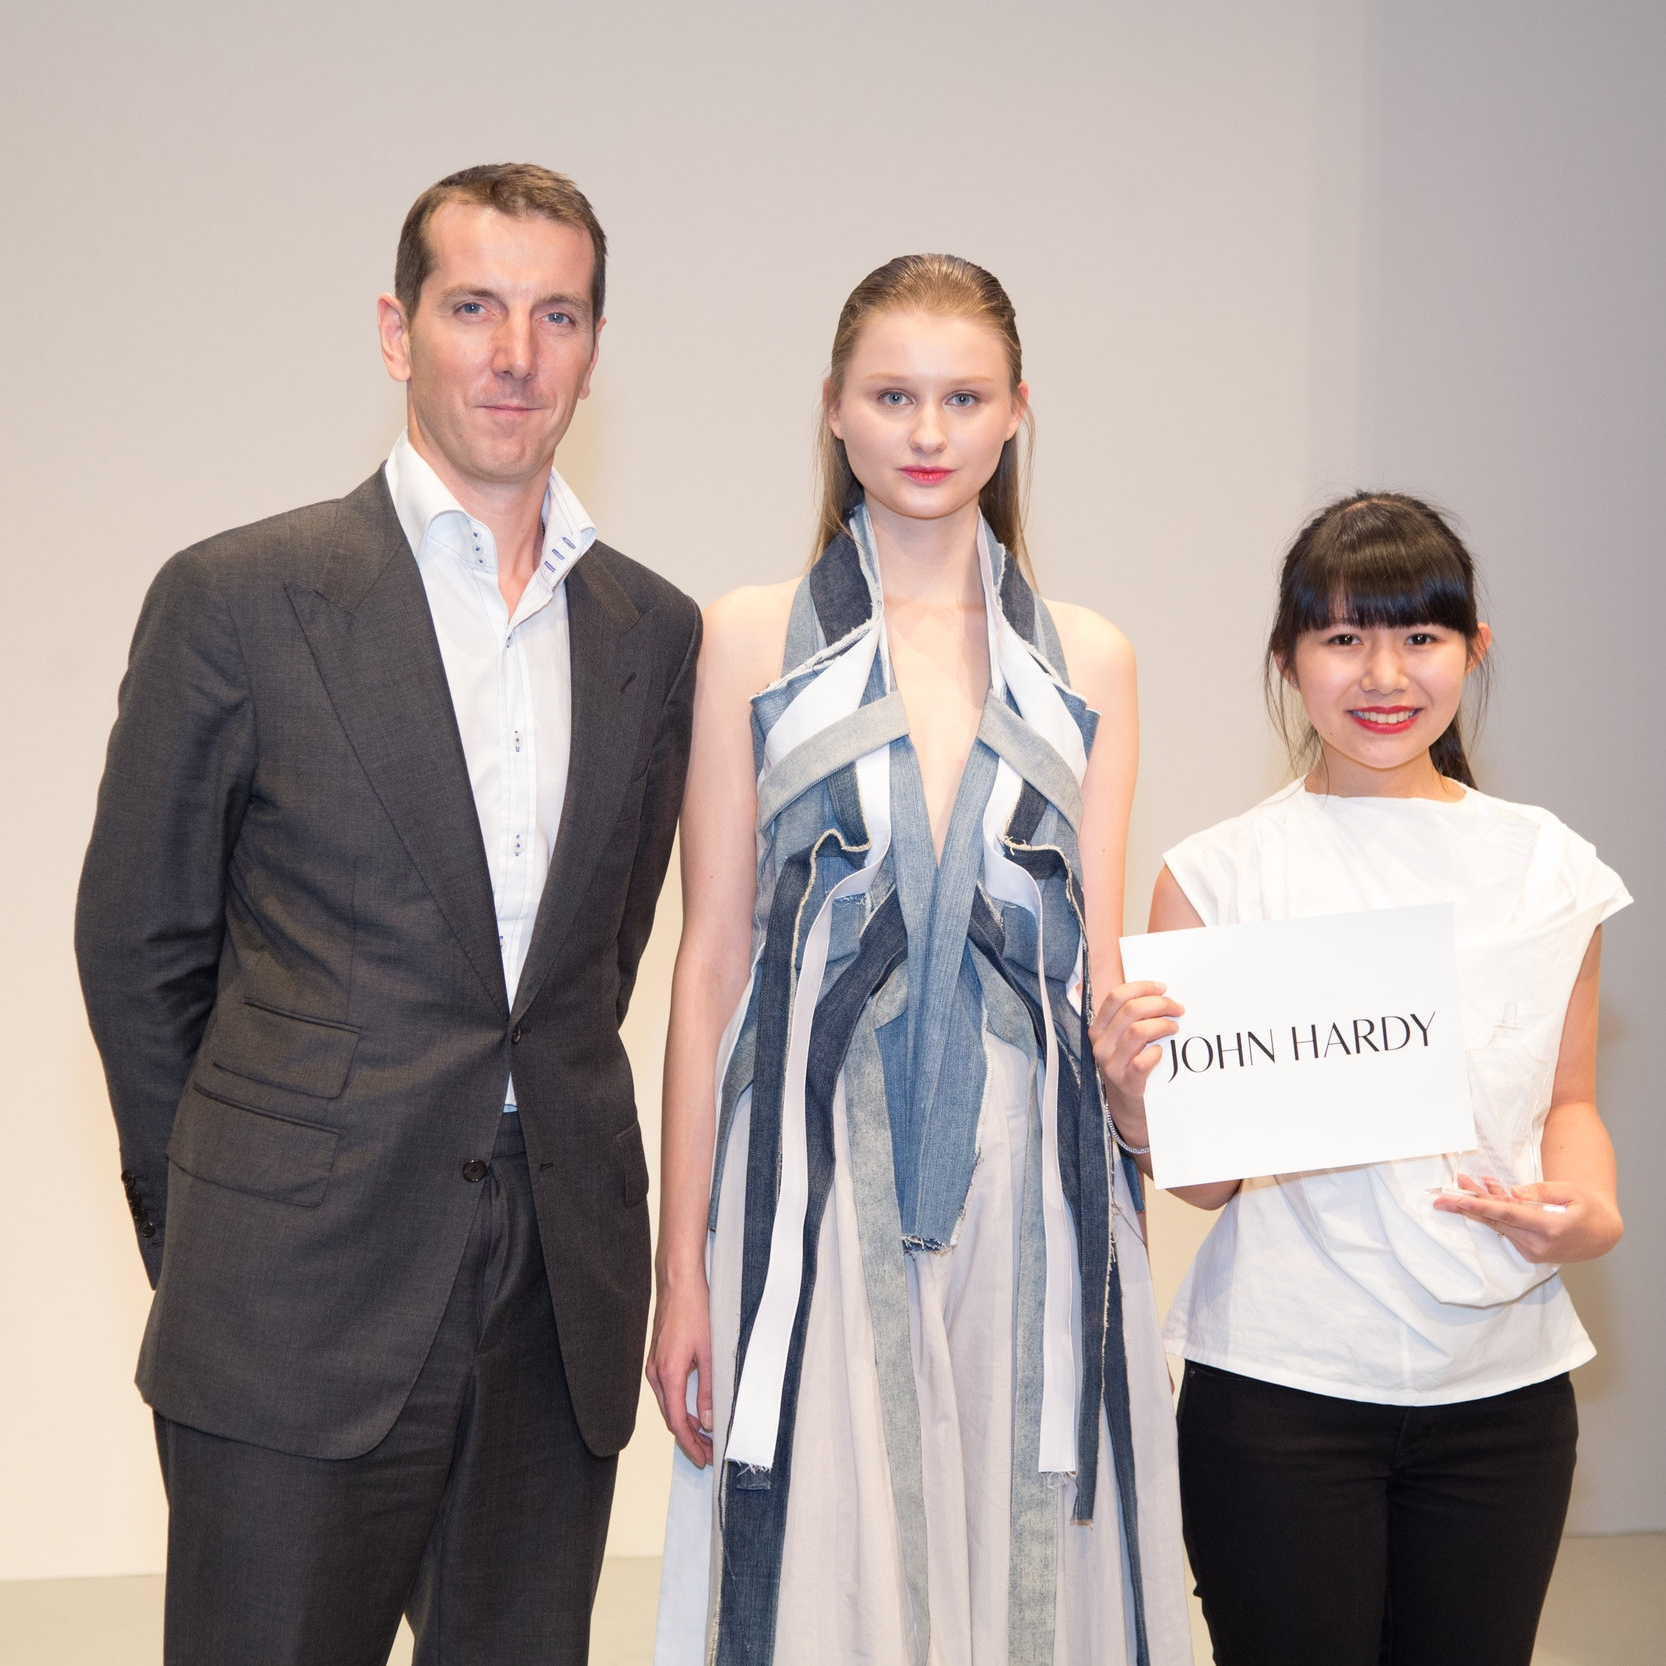 """Special Prize: """"The EcoChic Design Award 2014/15 with John Hardy"""" Winner   Laurensia Salim,Singapore"""